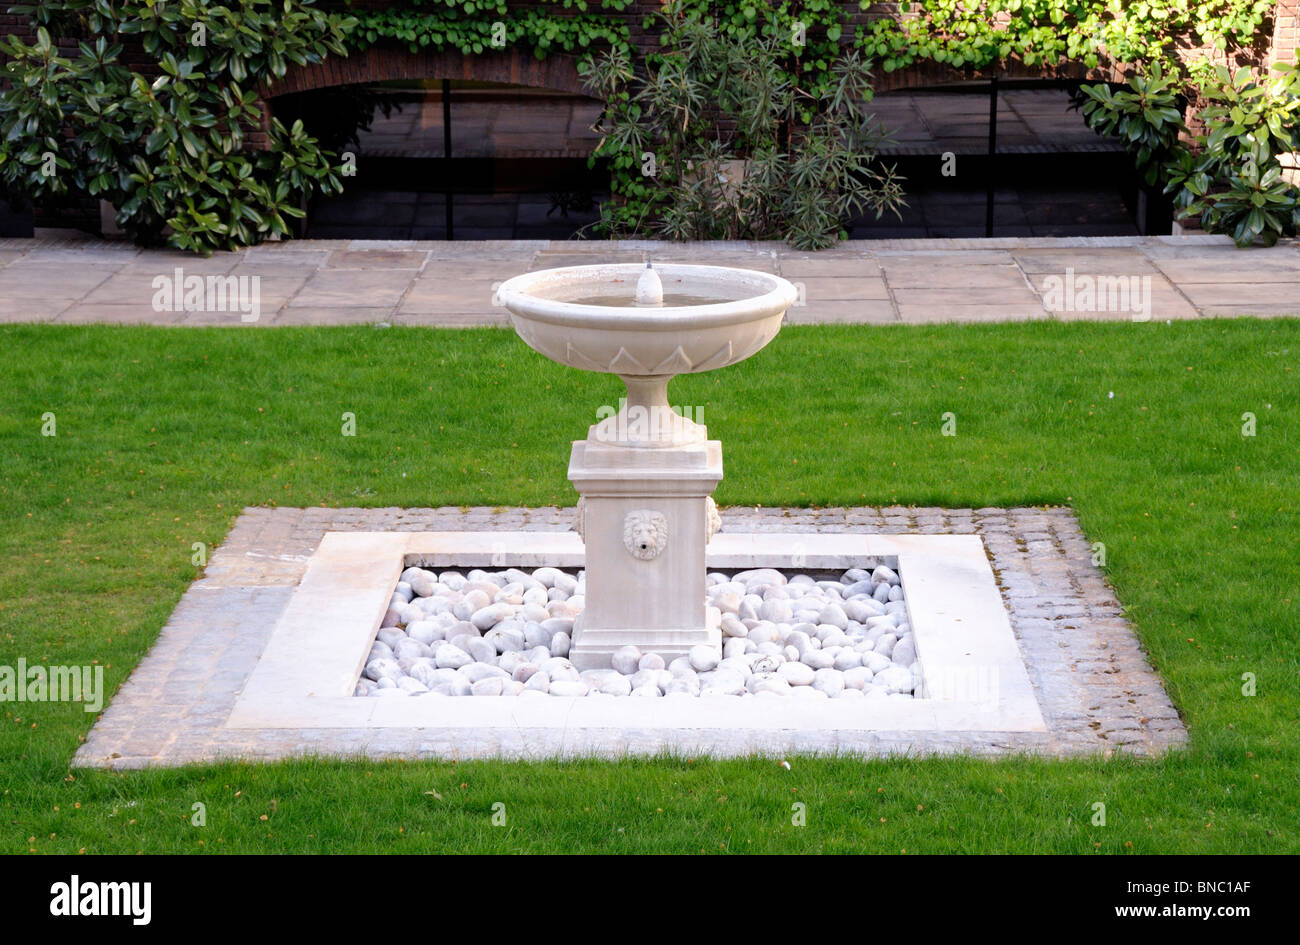 Ornamental fountain in The Worshipful Company of Goldsmiths garden off Gresham Street in the City of London, England, - Stock Image